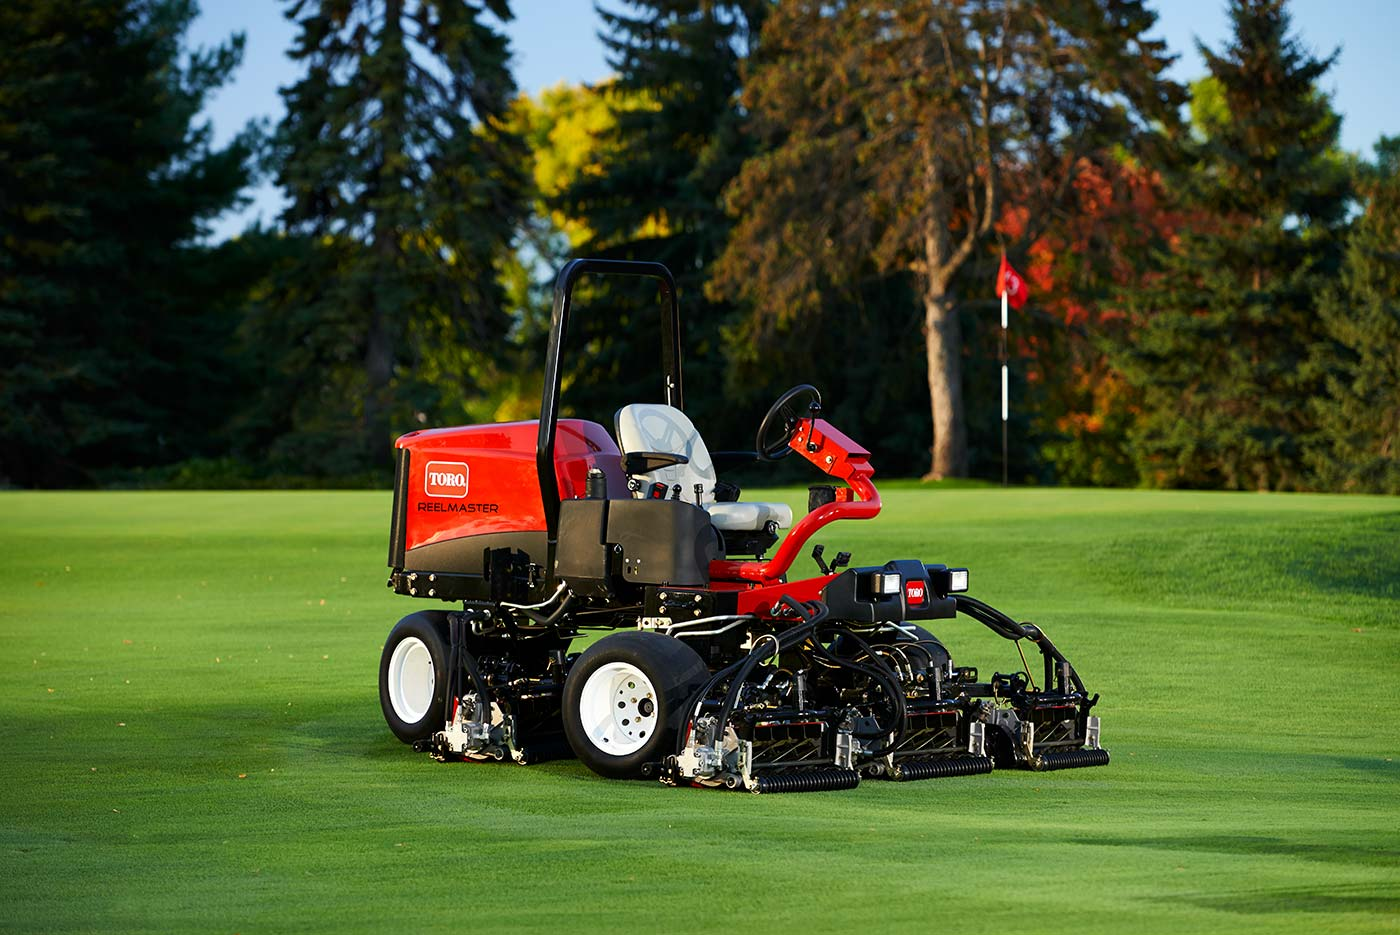 Buying Golf Course Maintenance Equipment – New, Used or Leased